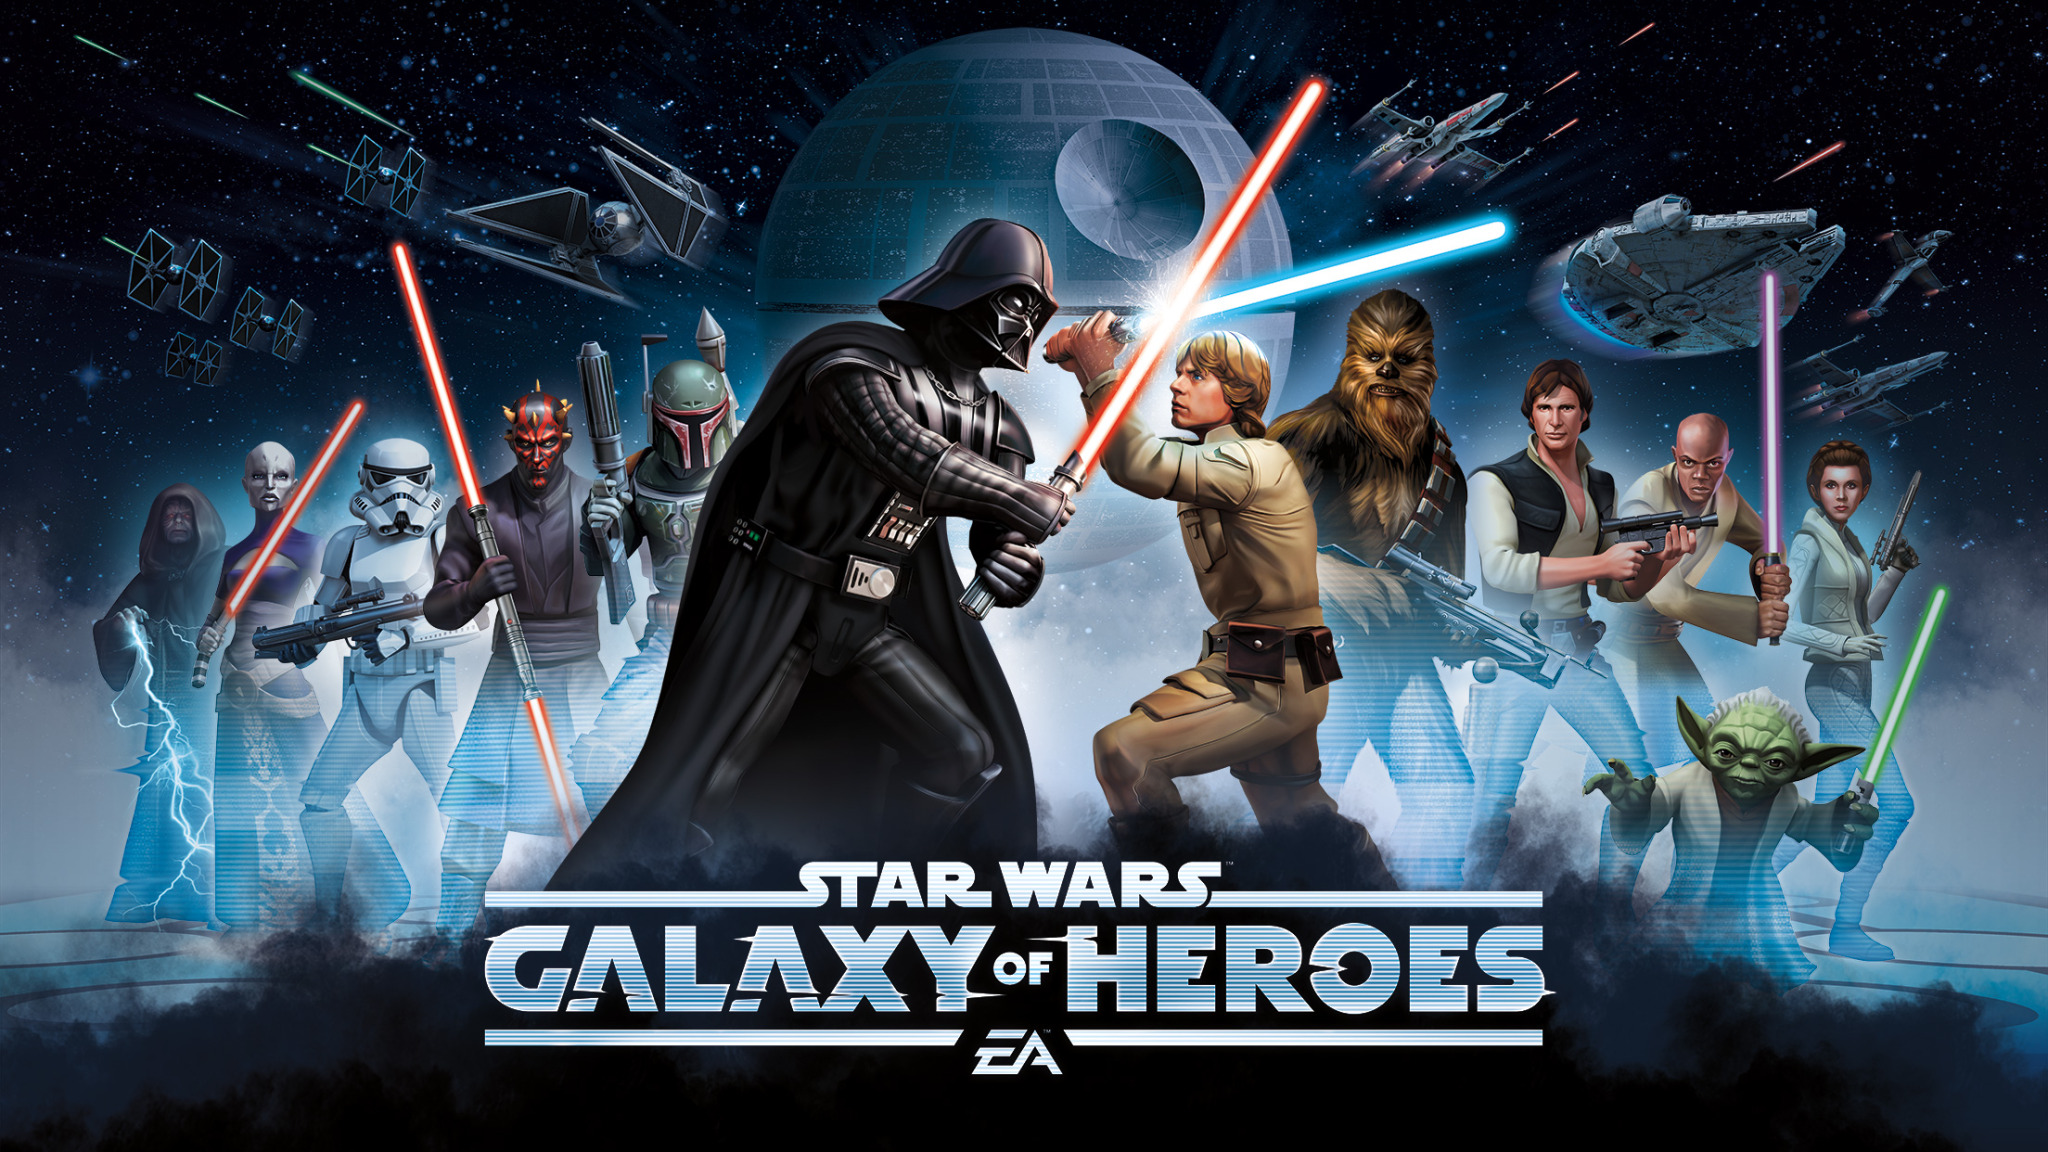 star-wars-galaxy-of-heroes-android-jatekteszt/2016/07/10